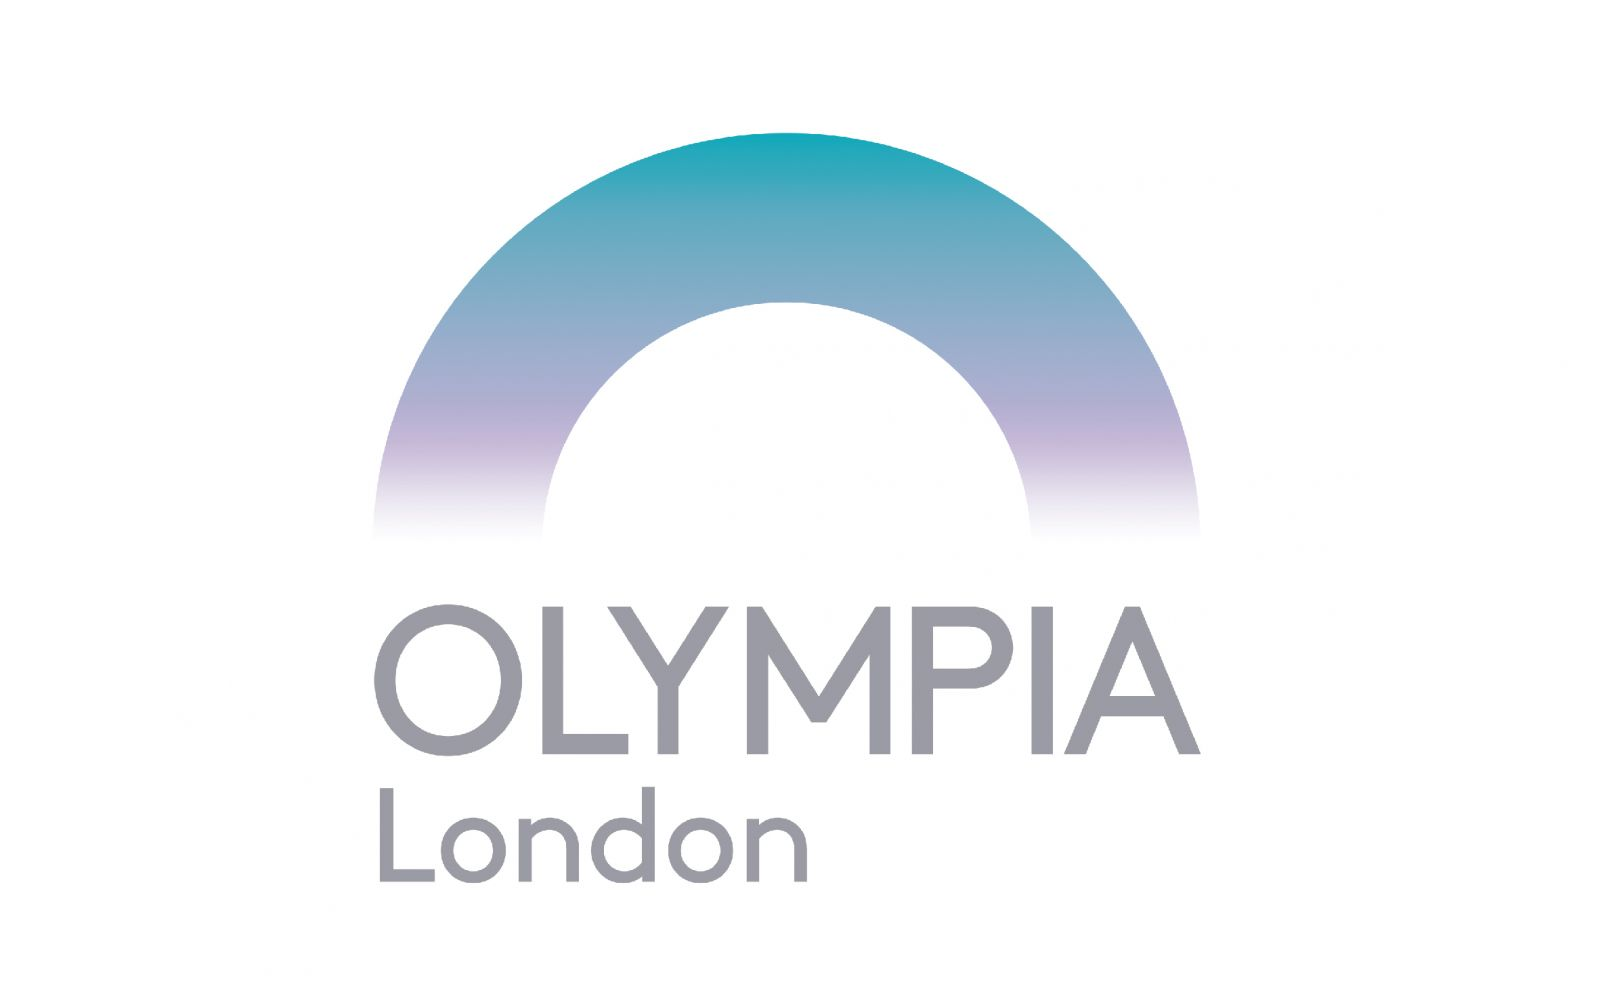 Olympia London includes ICTS UK in its Framework Agreement for the Provision of Security Services